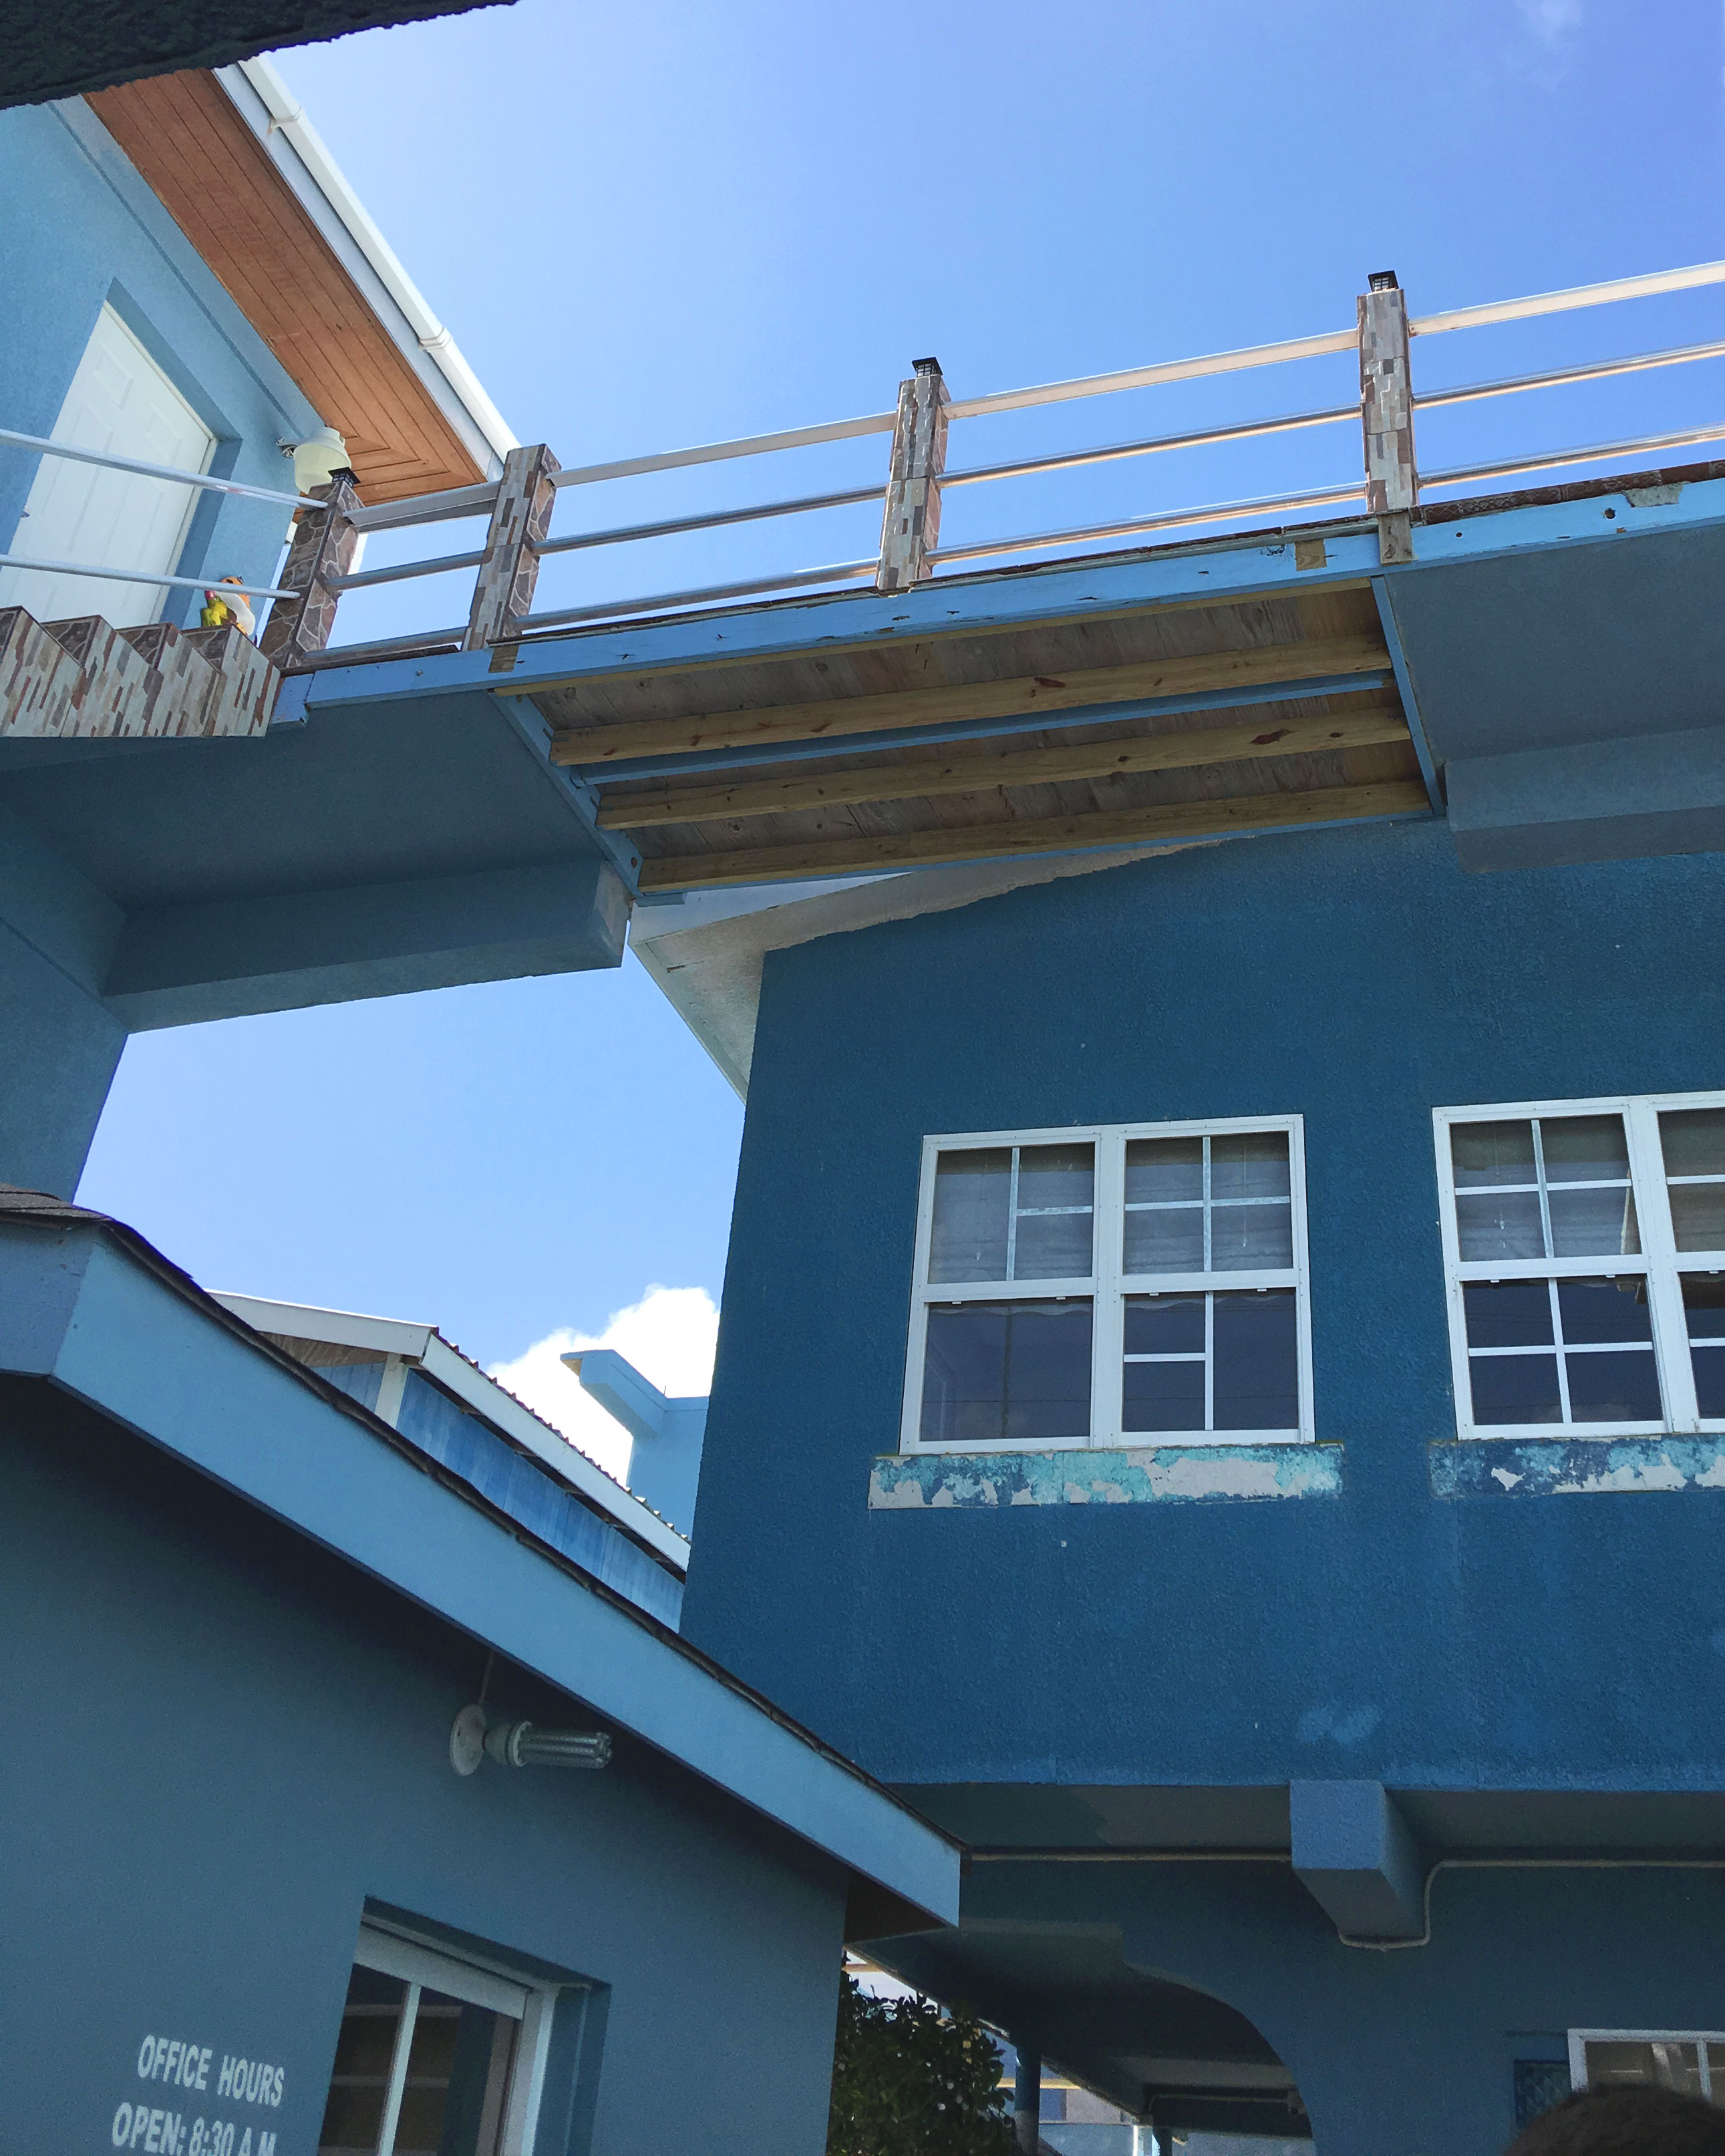 Caye Caulker buildings